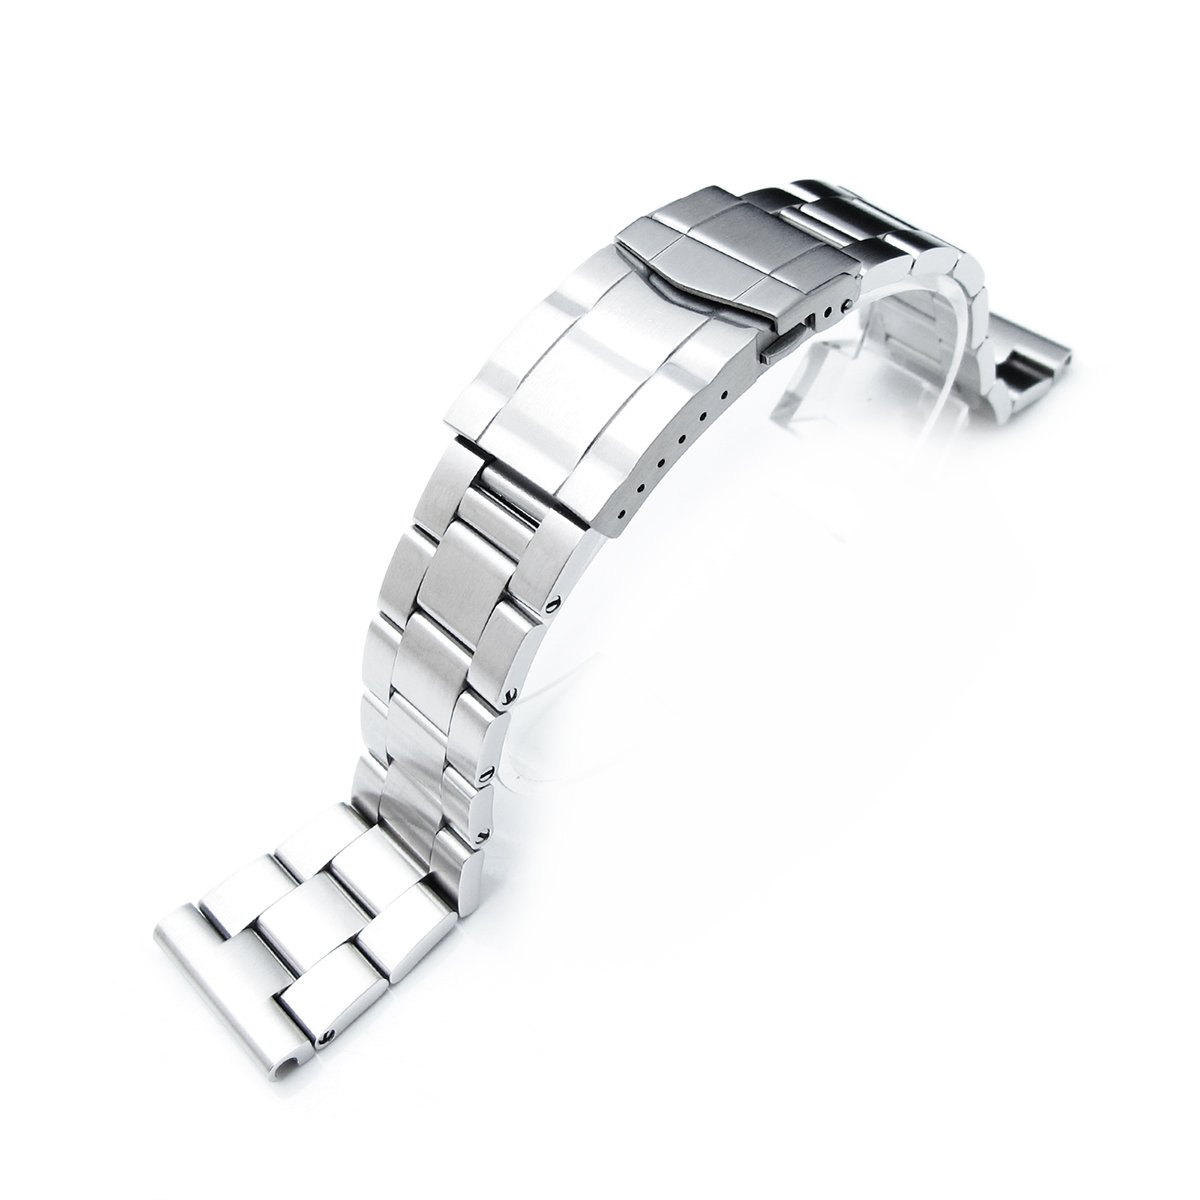 19mm Super Oyster watch band universal straight end version, Solid Submariner Clasp